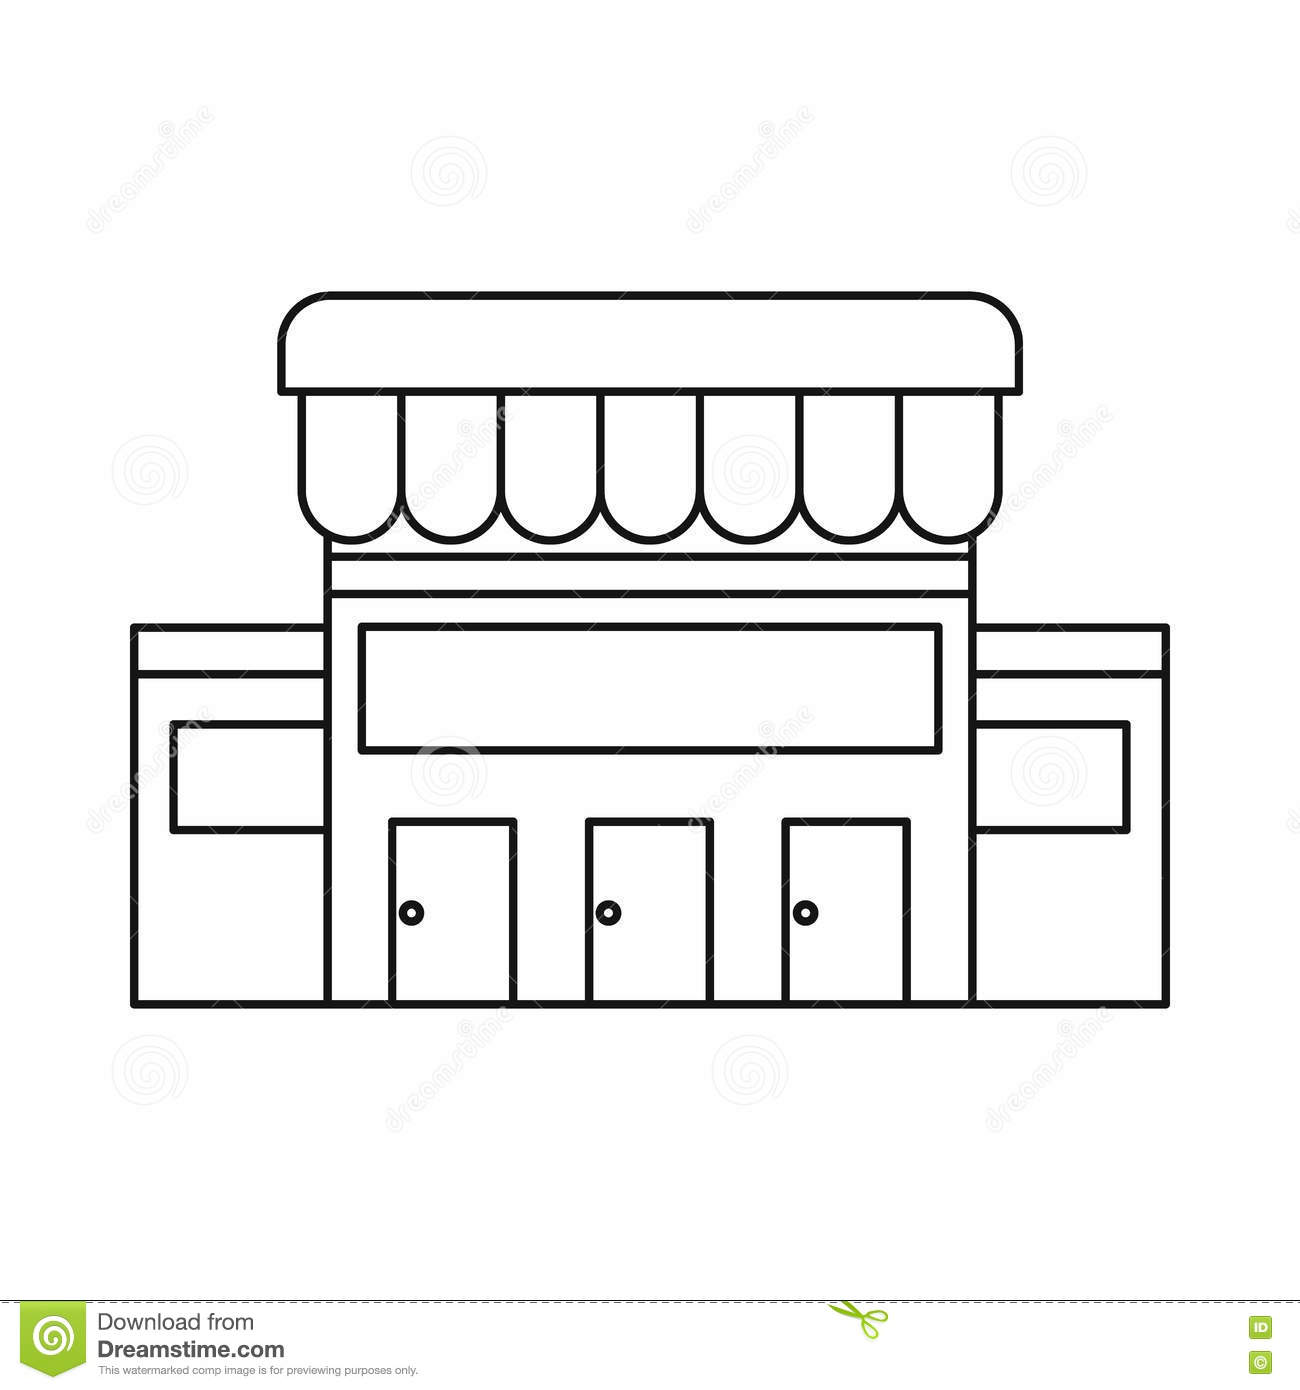 supermarket building clipart black and white how to